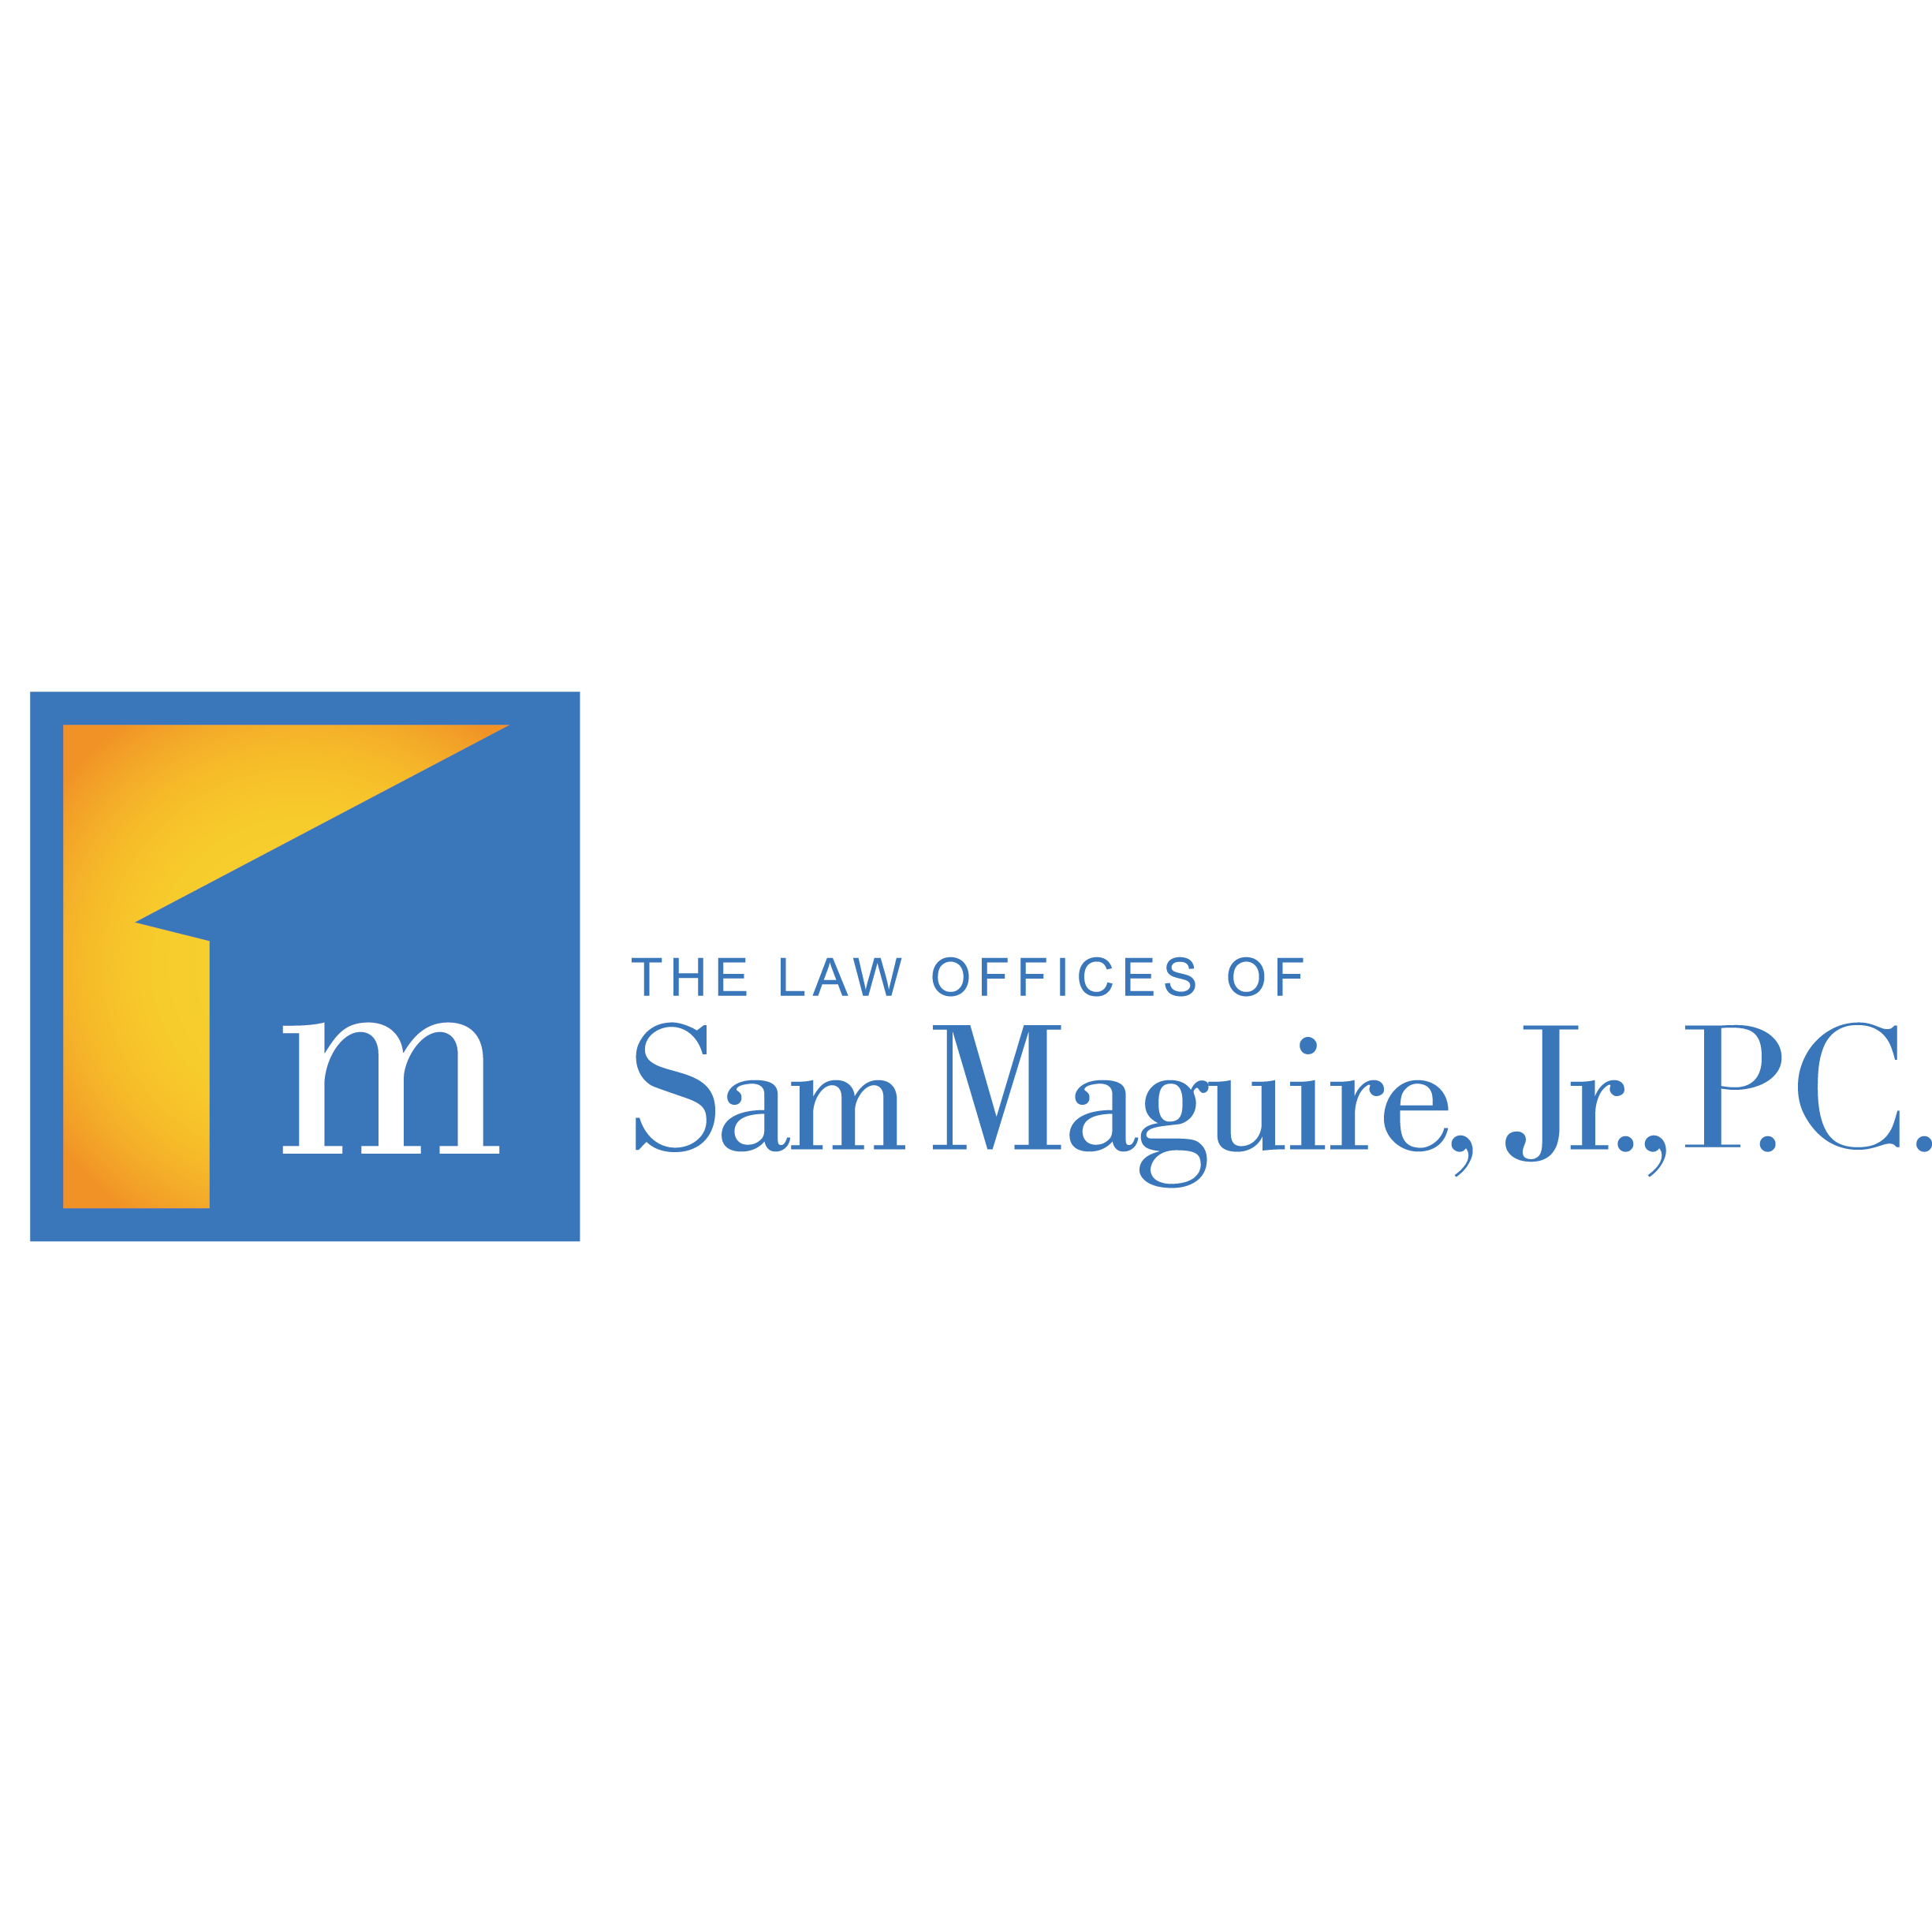 The Law Offices of Sam Maguire, Jr. P.C.